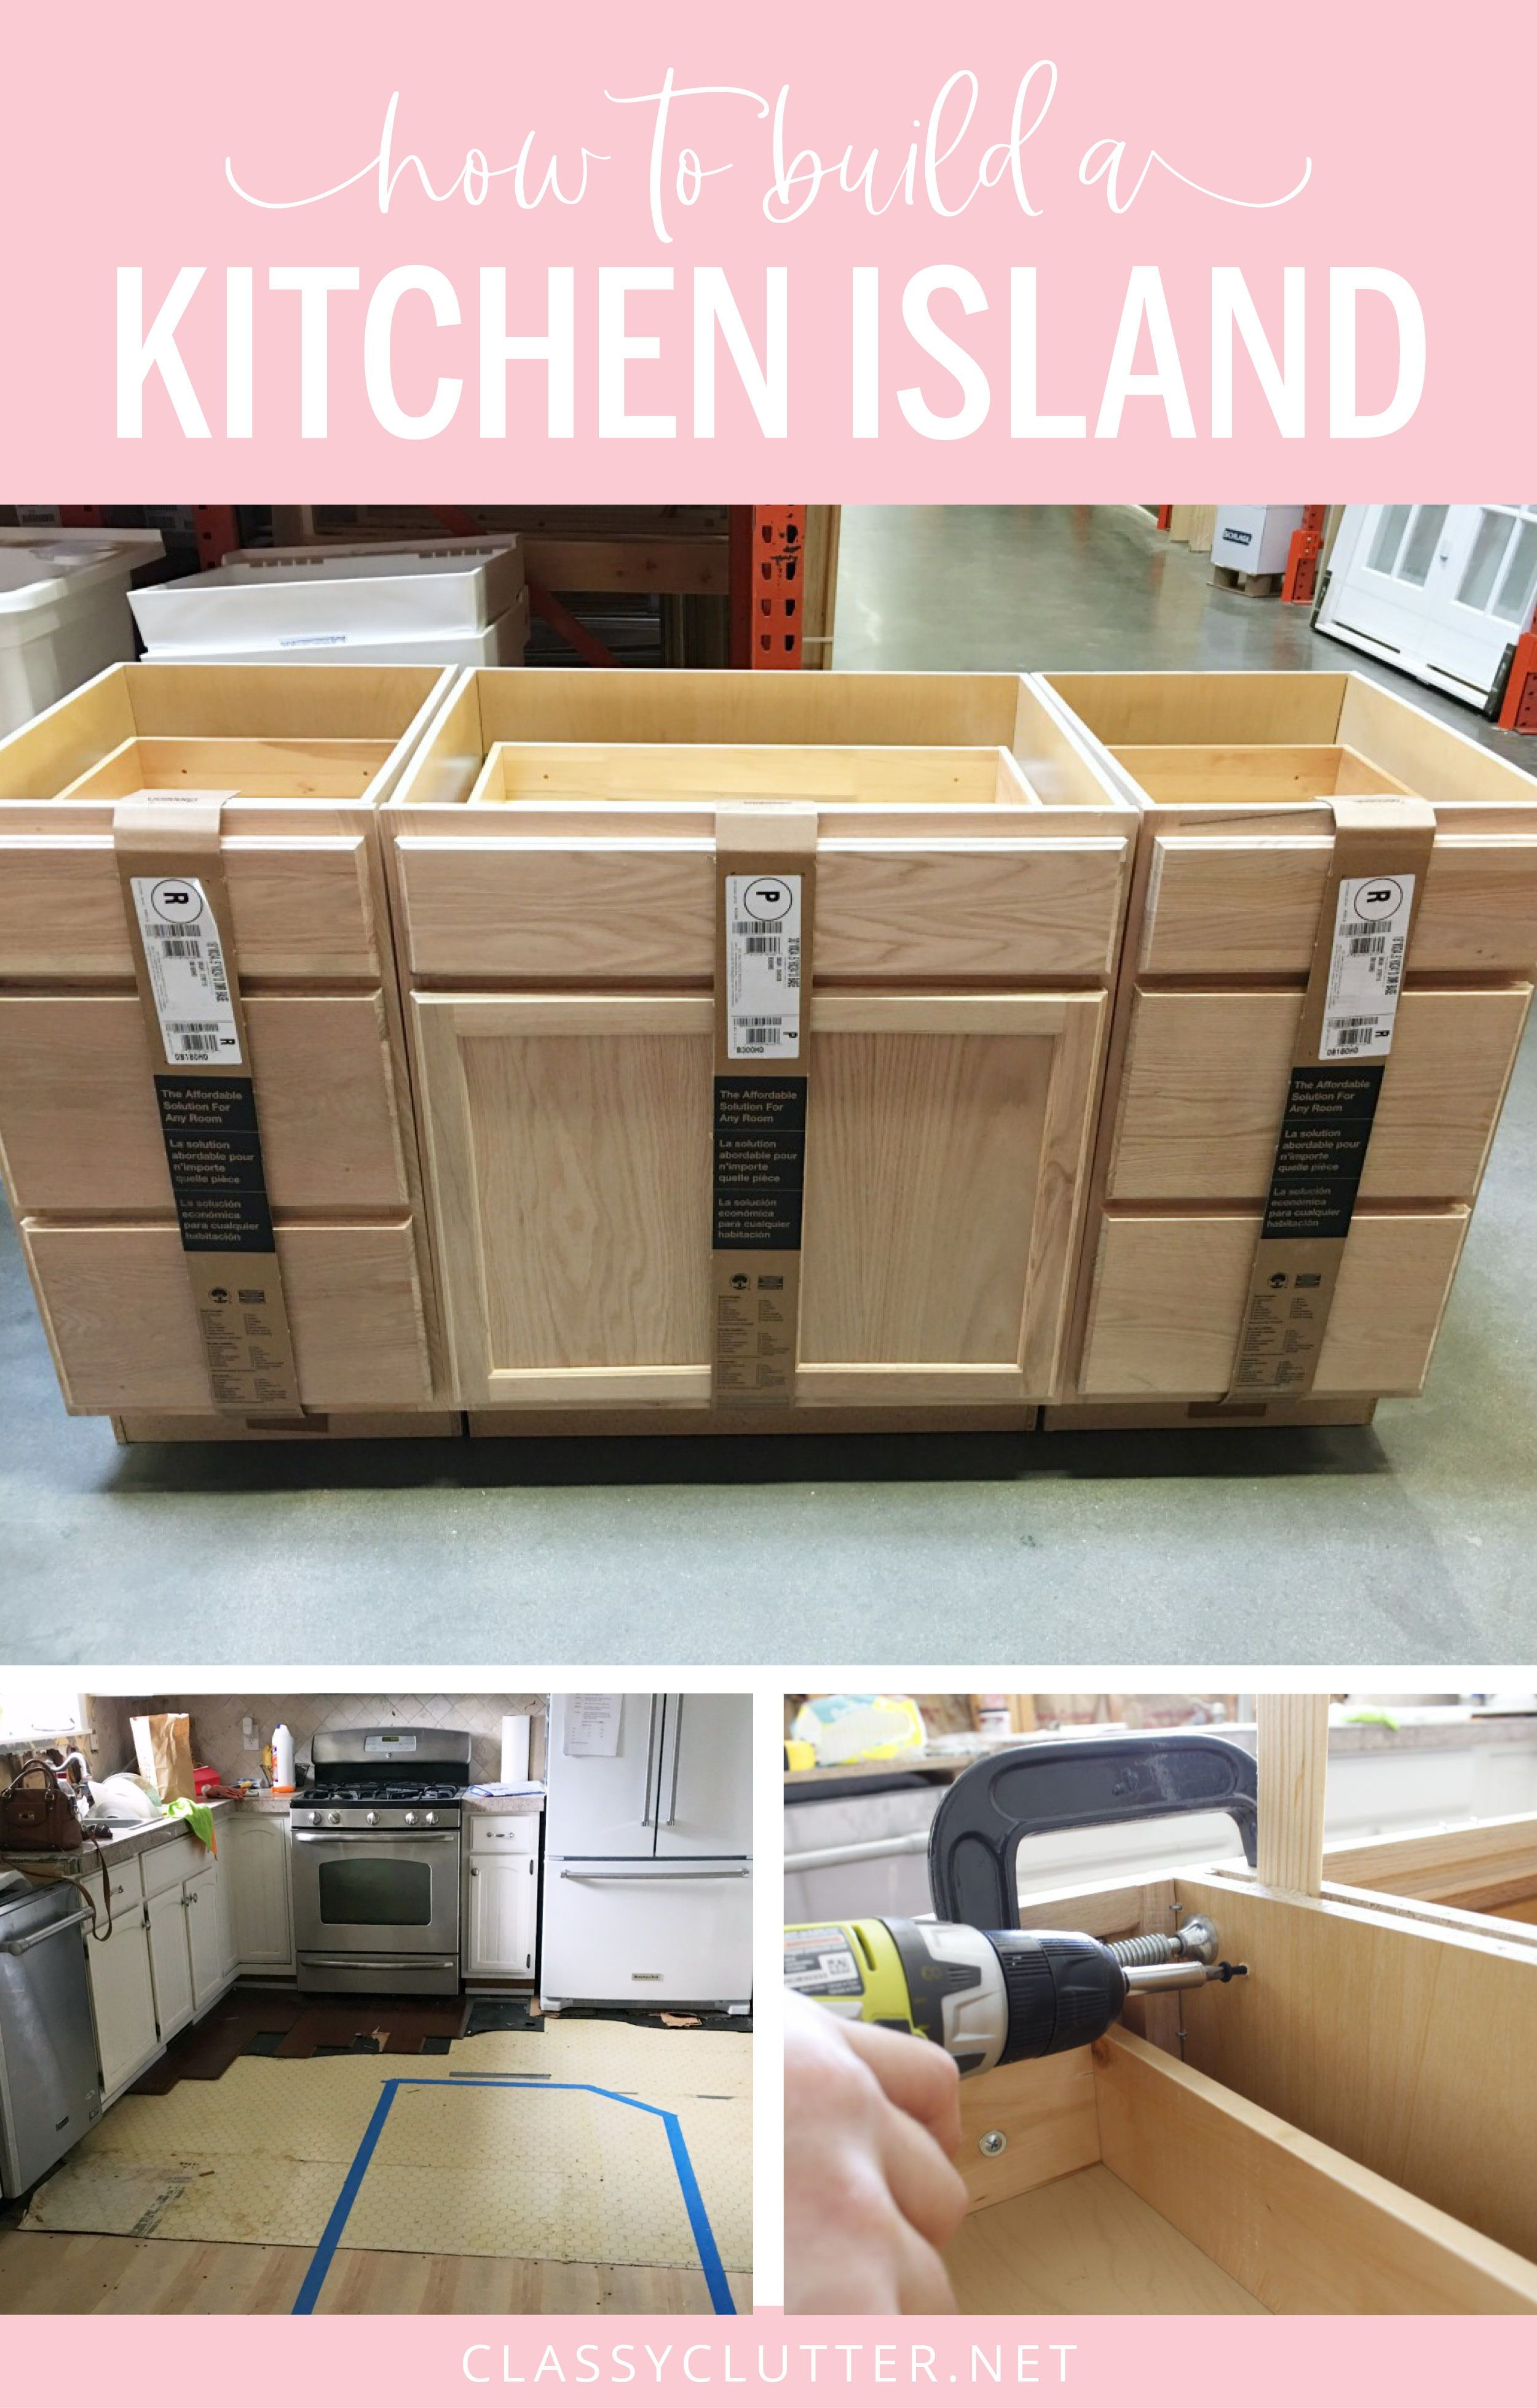 How To Build A Kitchen Island Easy Diy Kitchen Island Build Kitchen Island Building A Kitchen Kitchen Island Using Stock Cabinets